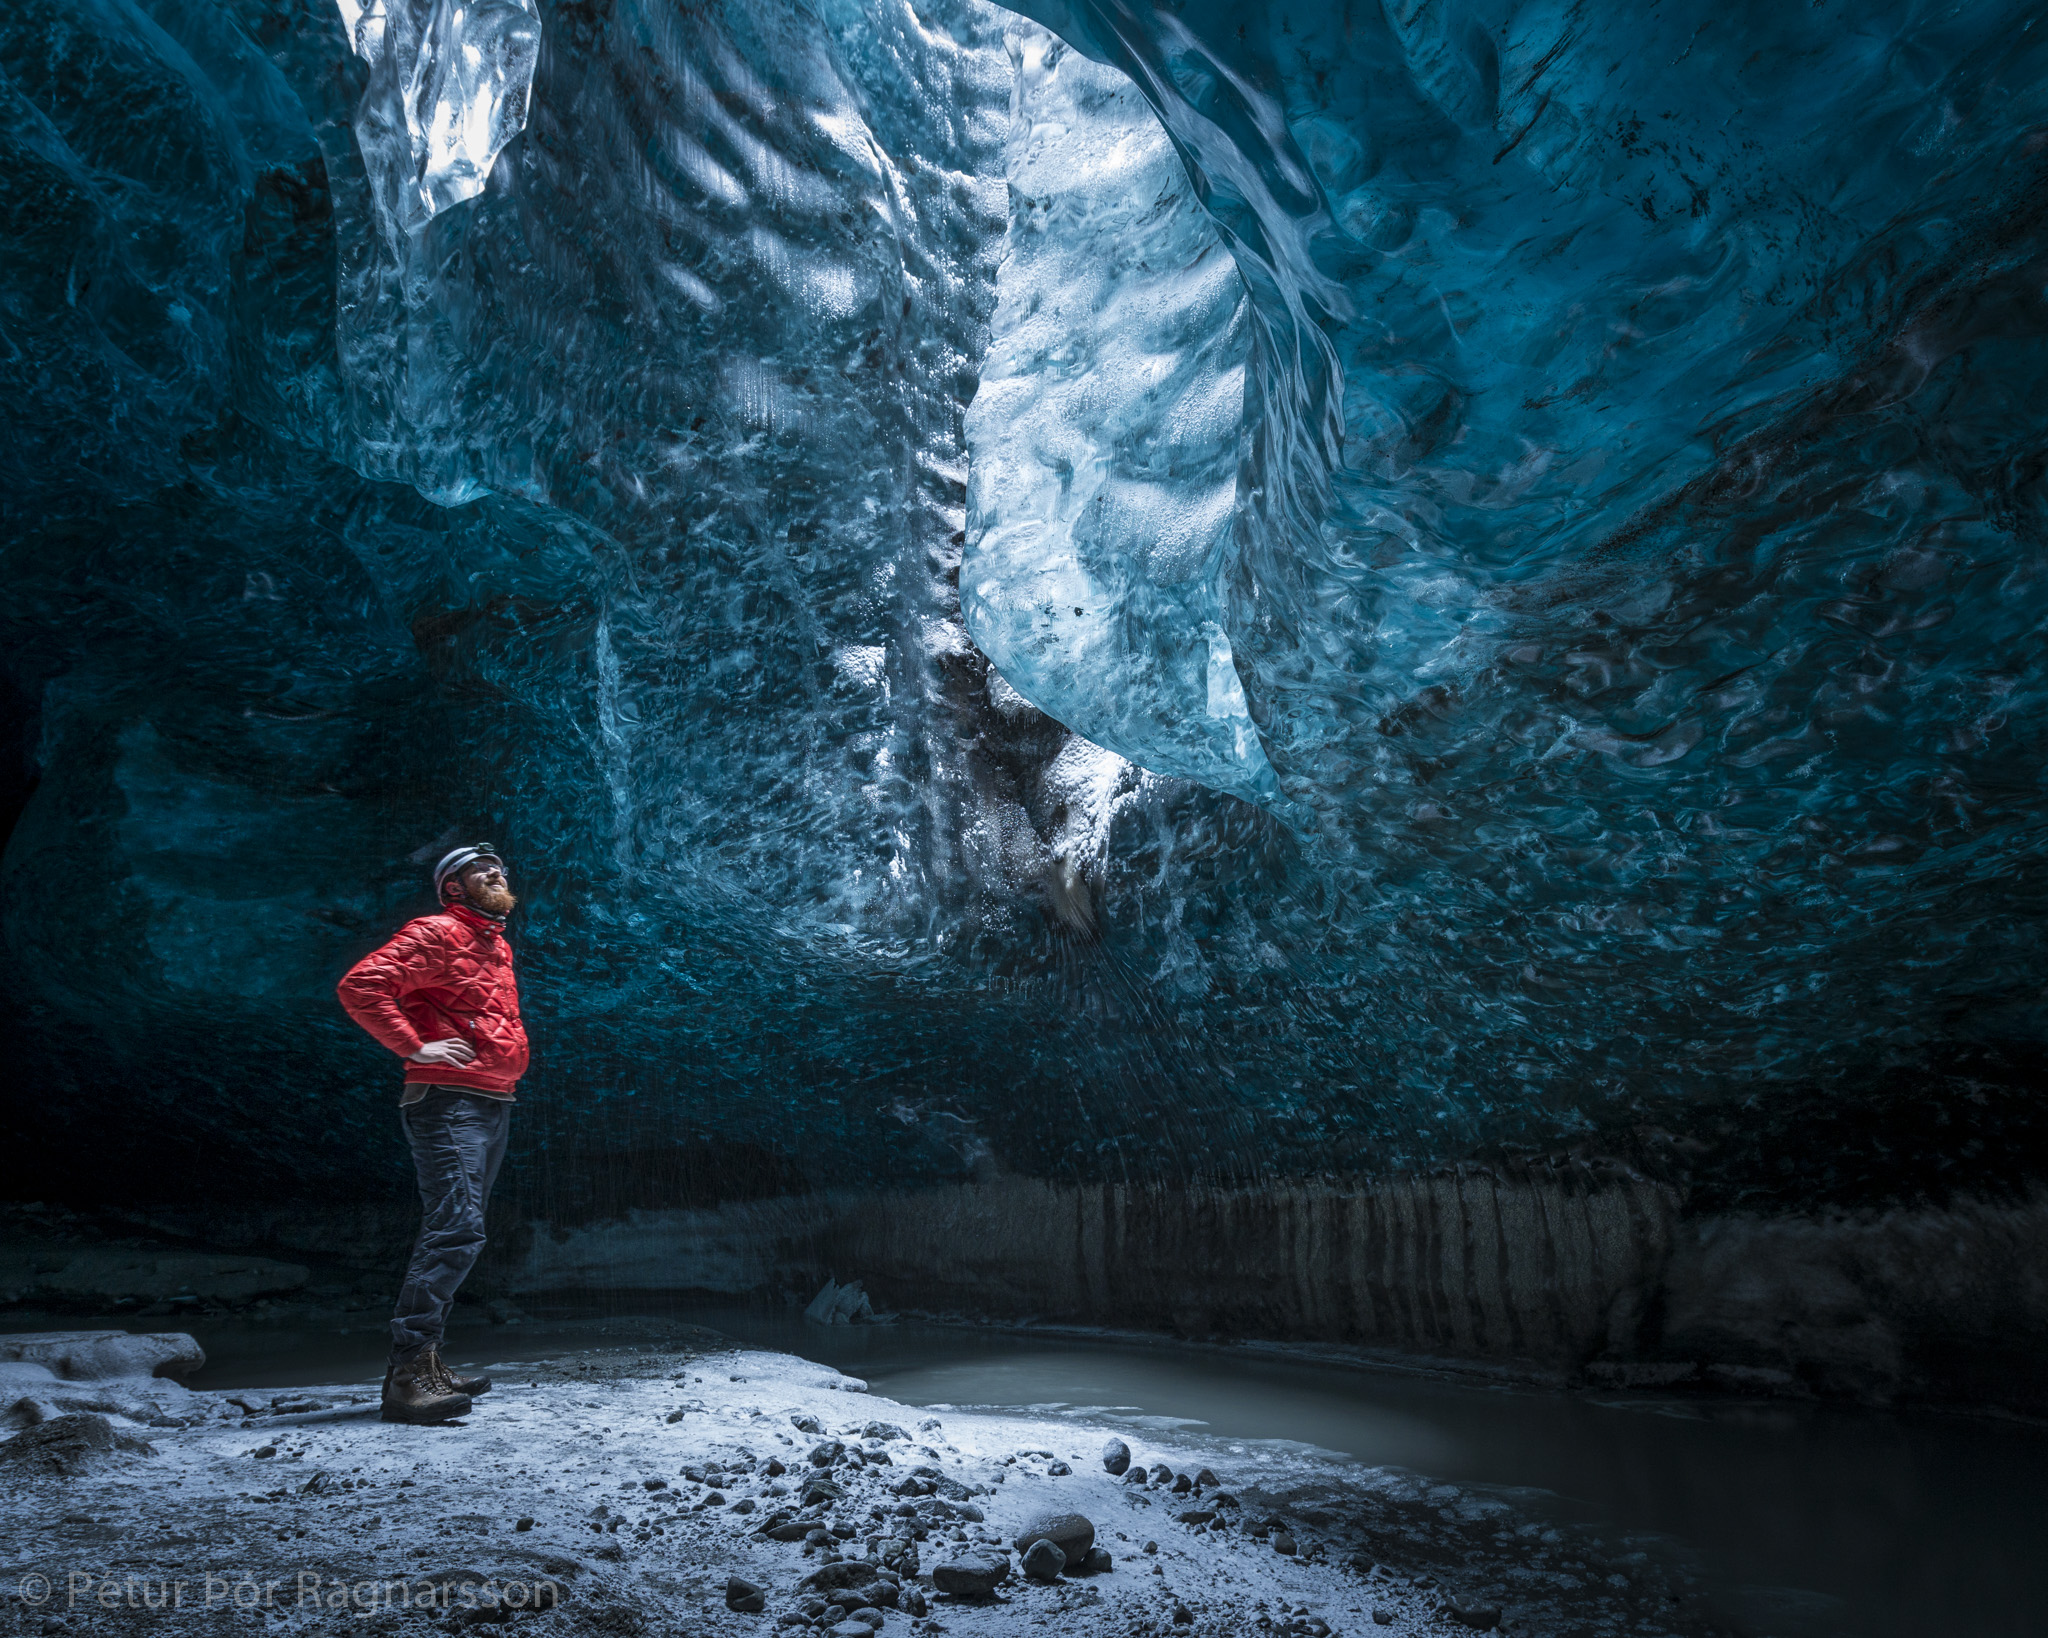 Me in an Icecave